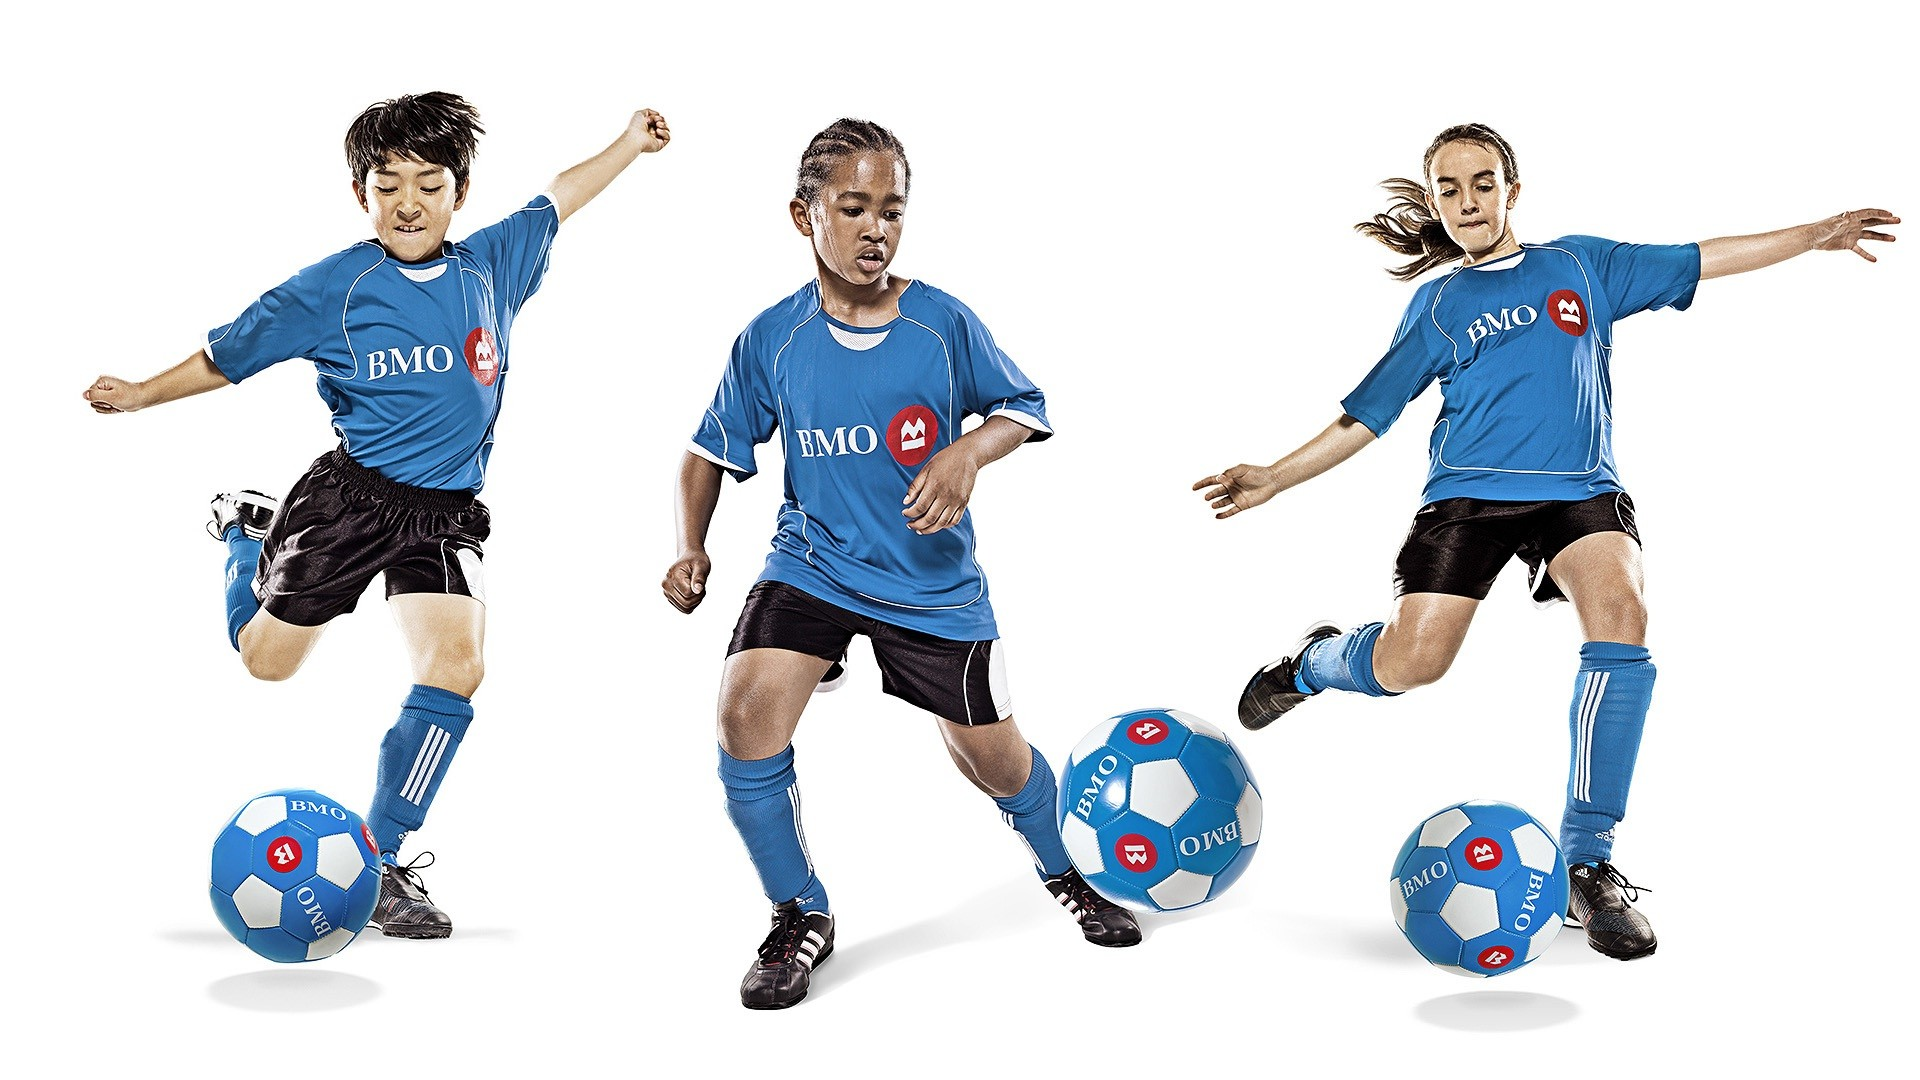 Soccer Girls Wallpaper Free: Cute Soccer Wallpapers (62+ Images